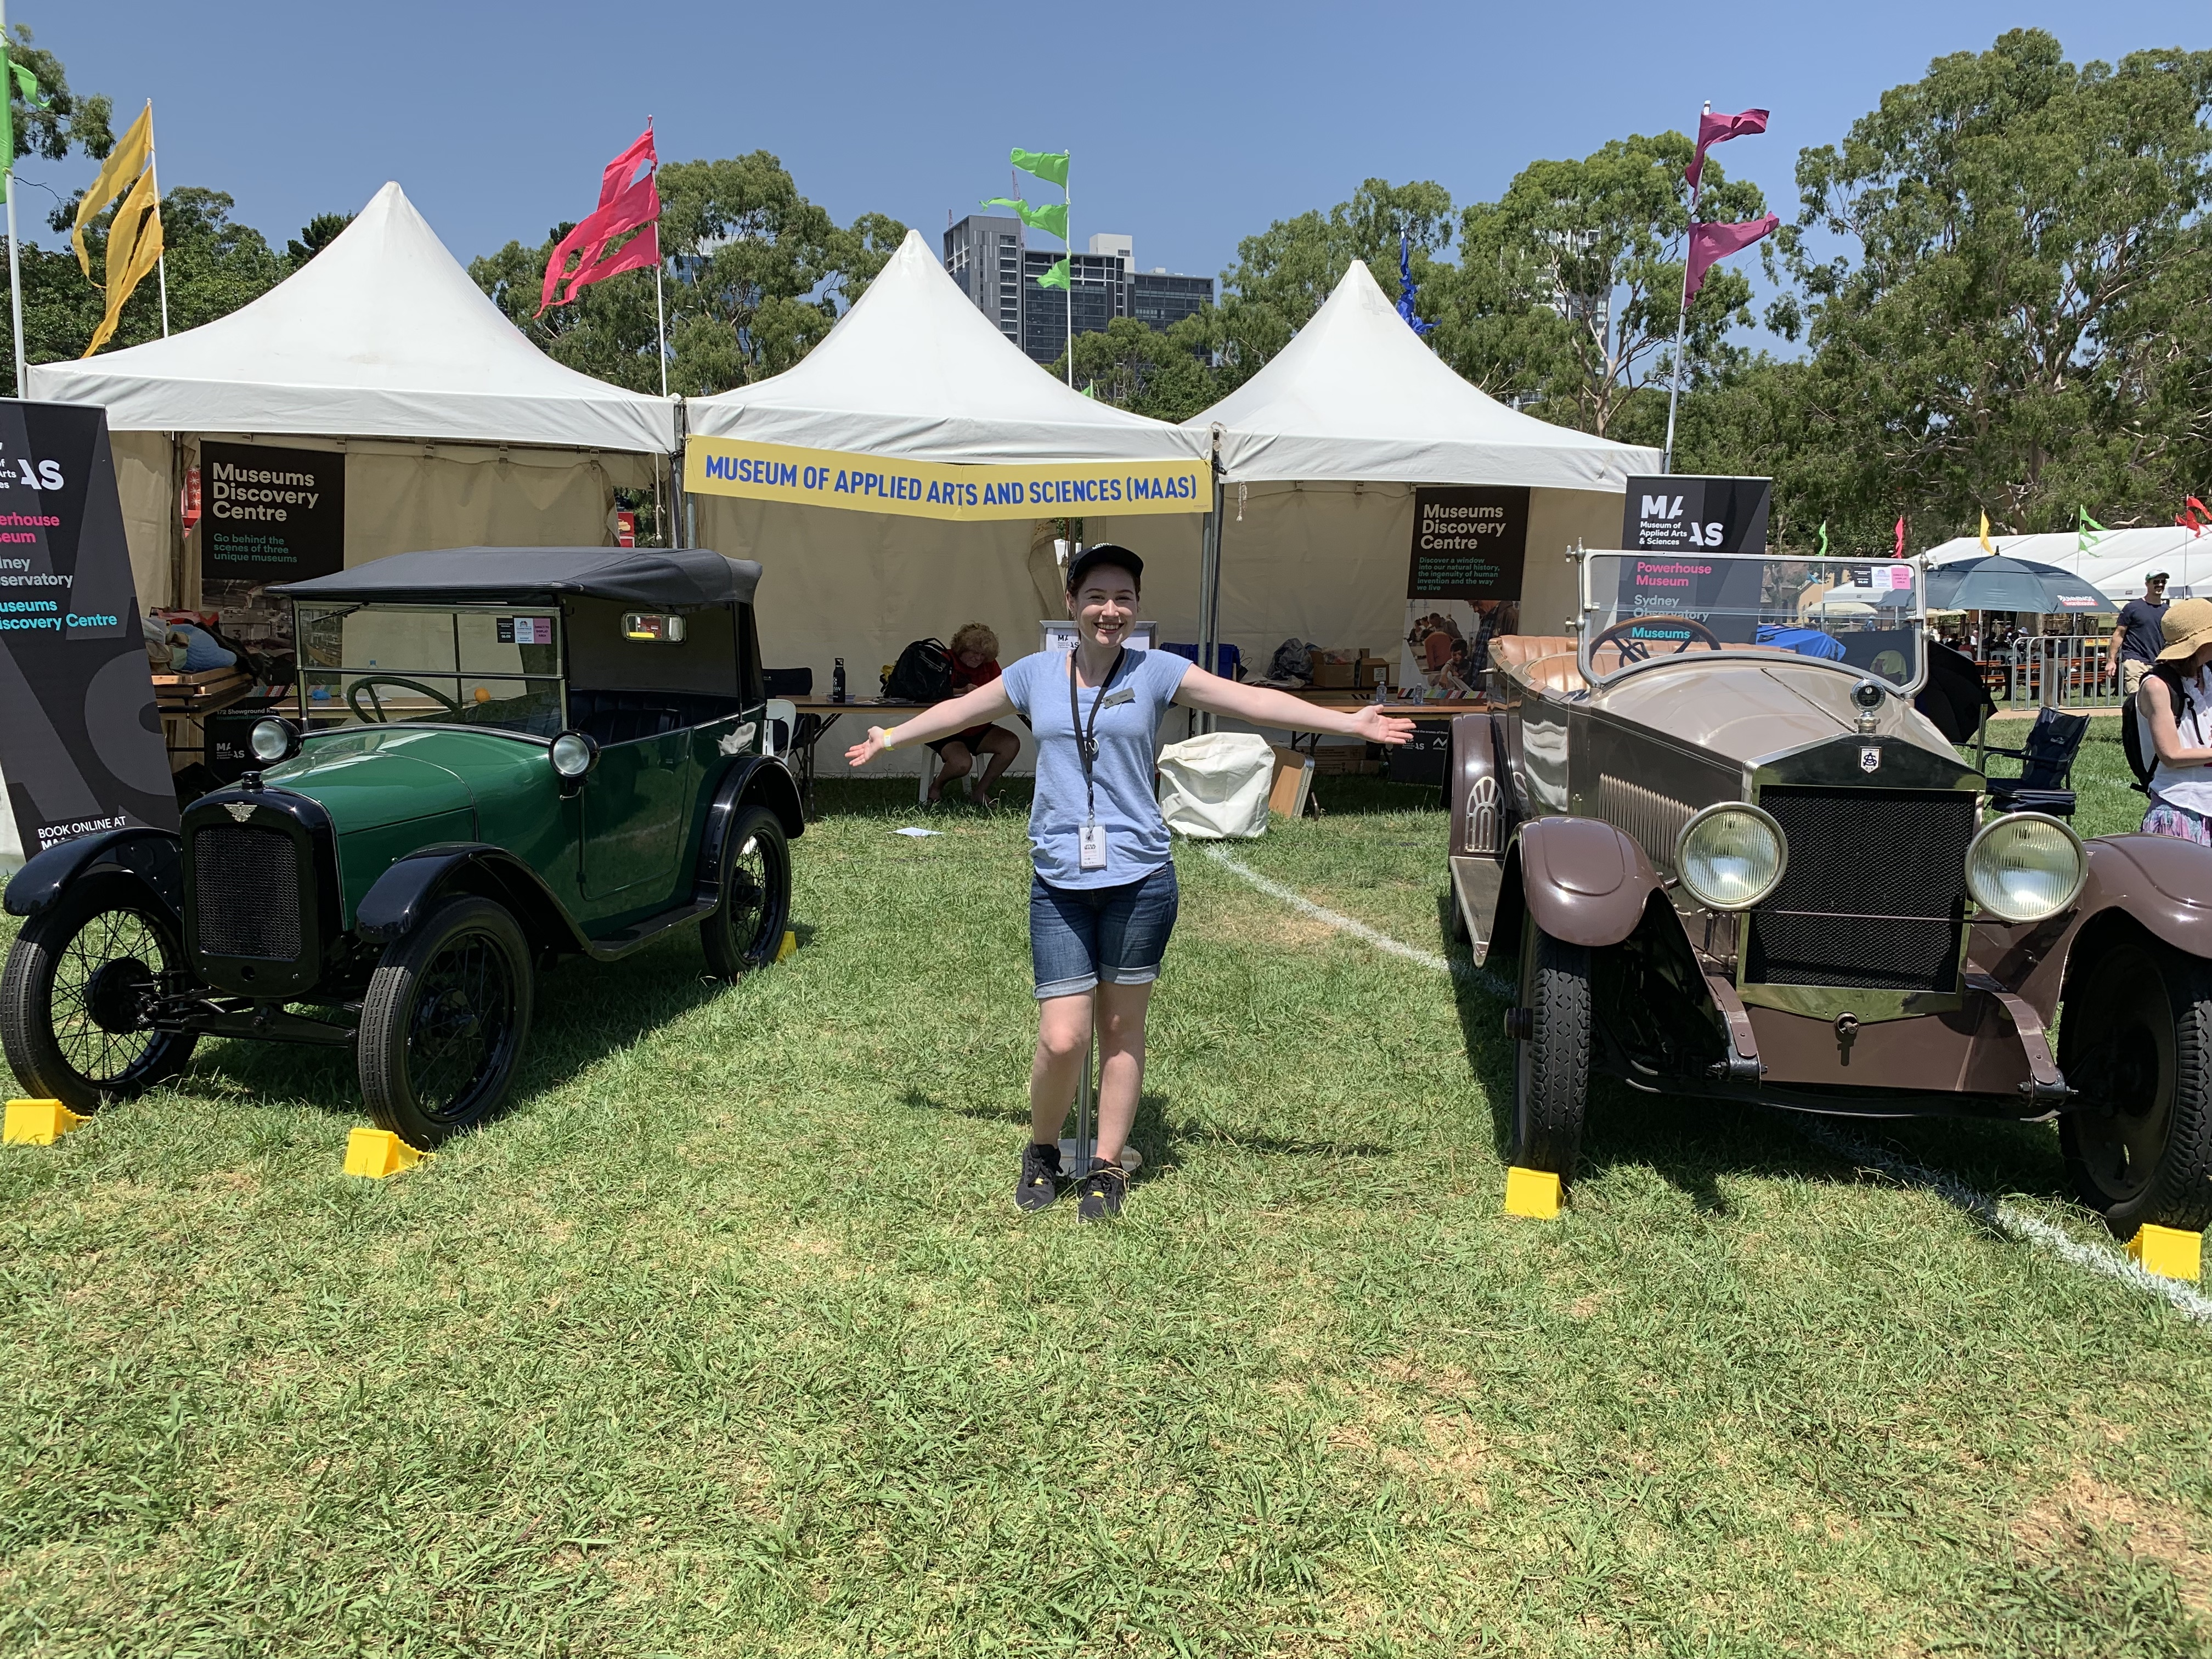 Small pale woman in a blue t-shirt, jean shorts and black cap stands on grass between two classic cars with her arms outstretched. Car on the left is green and black and the other on the right is light and dark brown. Behind her is a white fabric marquee with three roofed points and multicoloured flags blowing in the breeze.